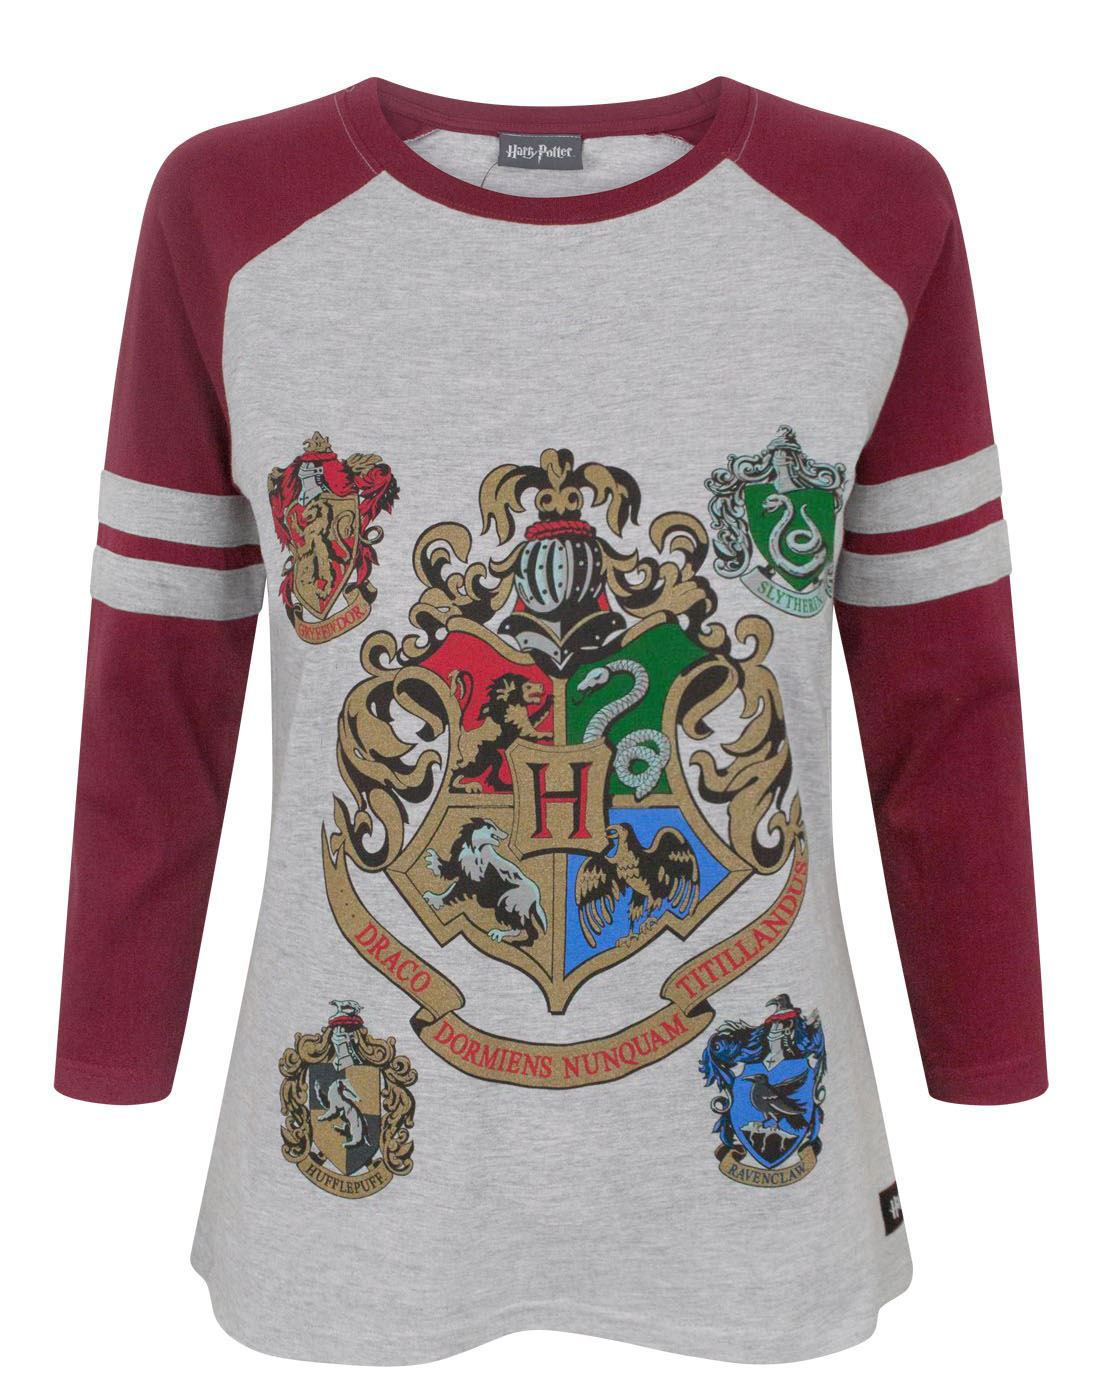 d0581e4f0 Harry Potter Hogwarts Crest Women's'/Ladies Raglan 3/4 Sleeve T-Shirt Top